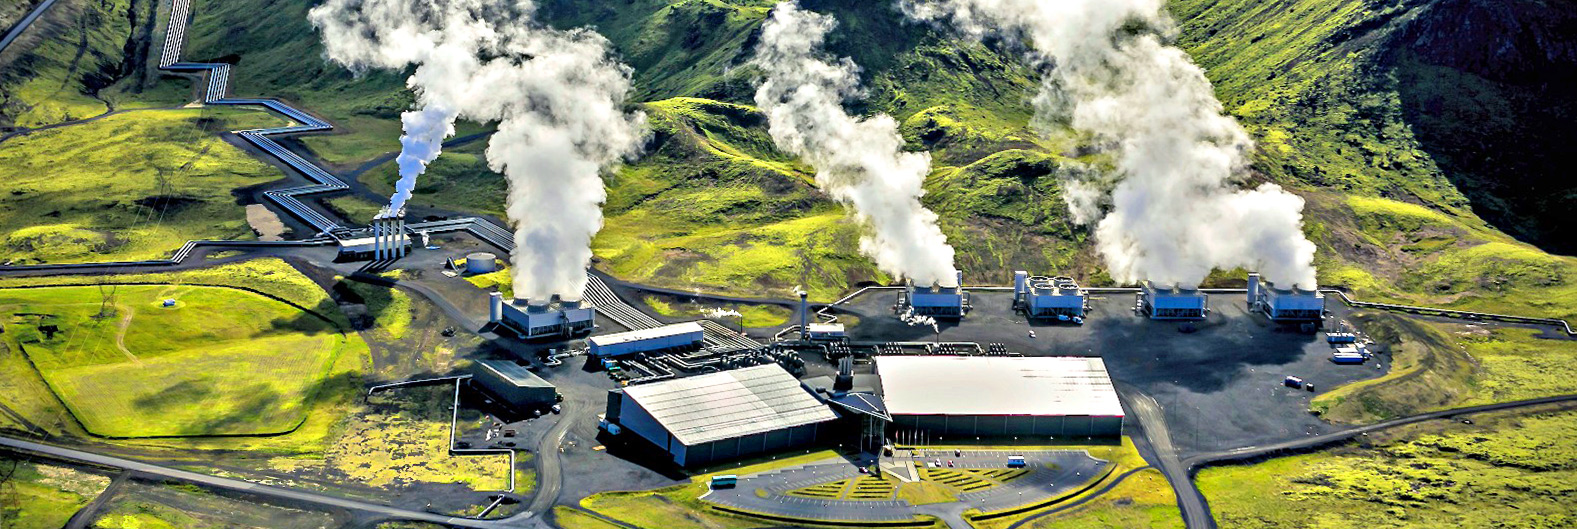 Climeworks-geothermal-power-plant-eliminates-more-CO2-than-it-produces-lead